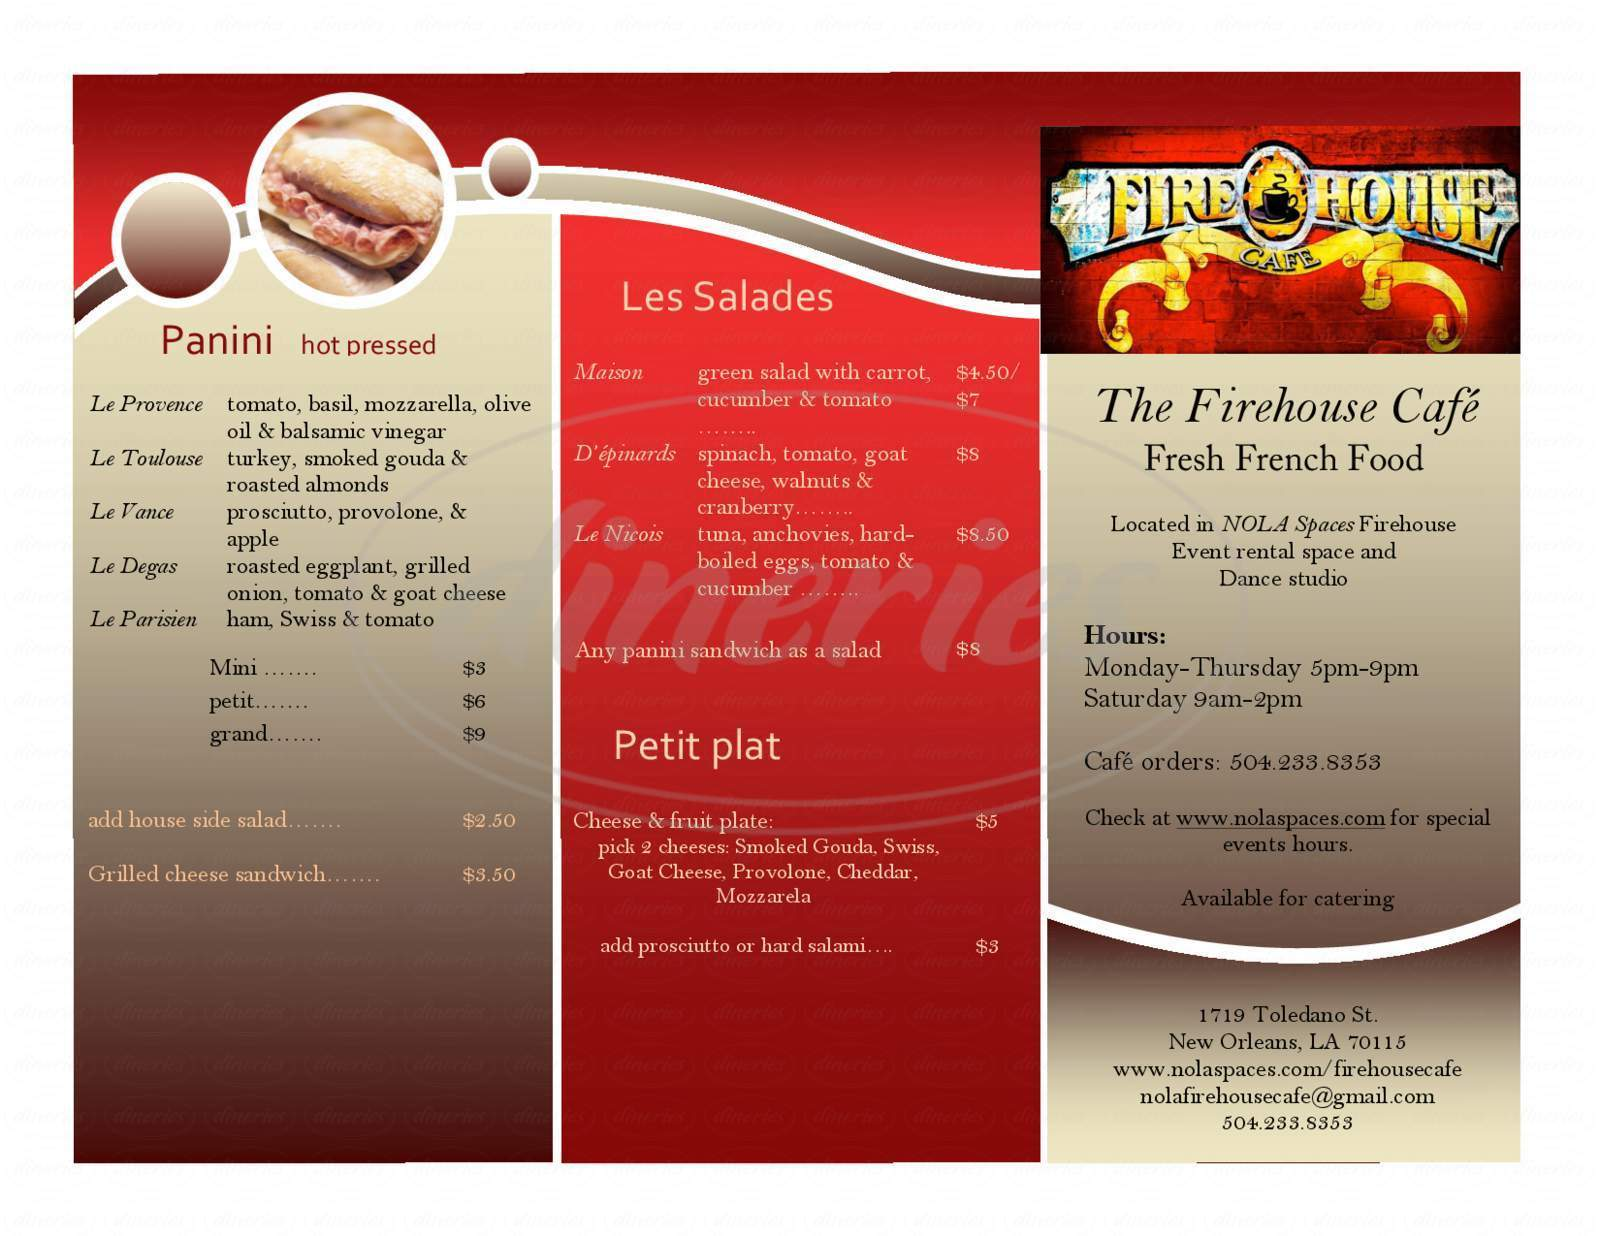 menu for Firehouse Cafe